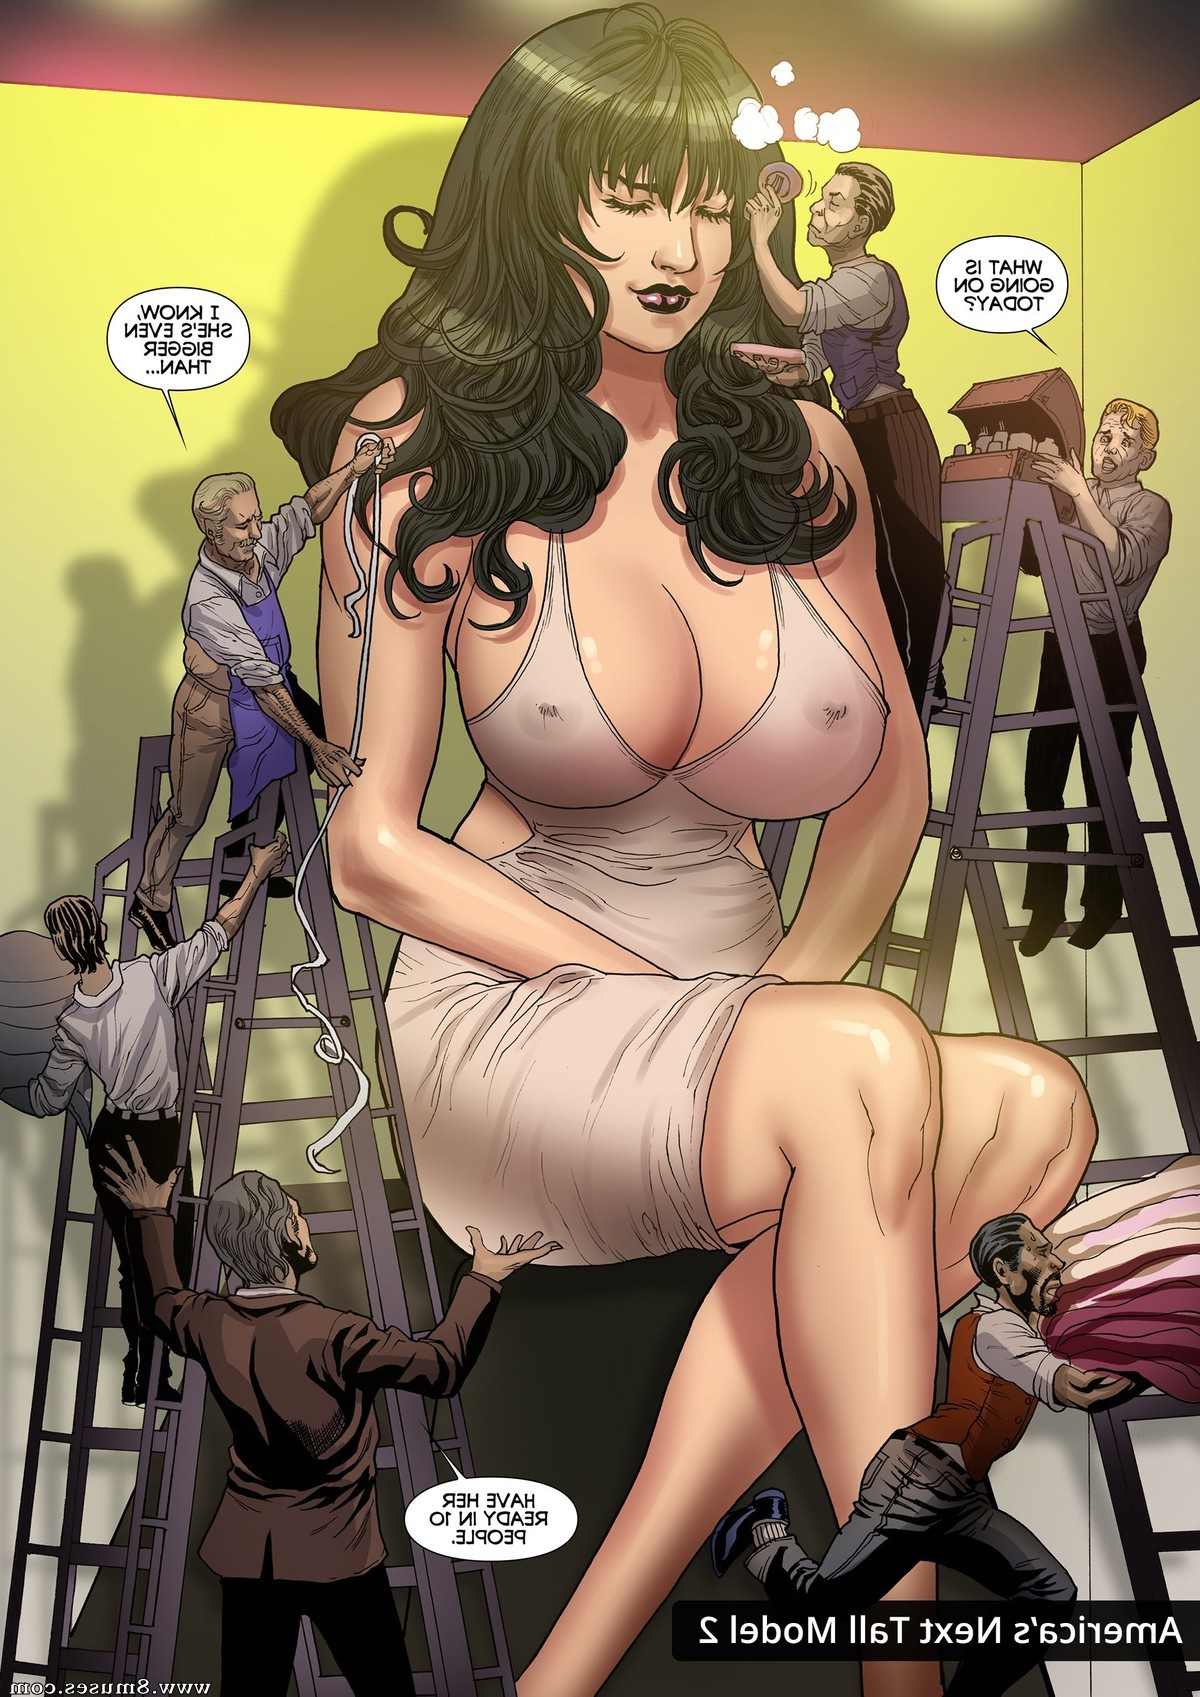 Giantess-Fan-Comics/From-The-Stars/Issue-1 From_The_Stars_-_Issue_1_19.jpg